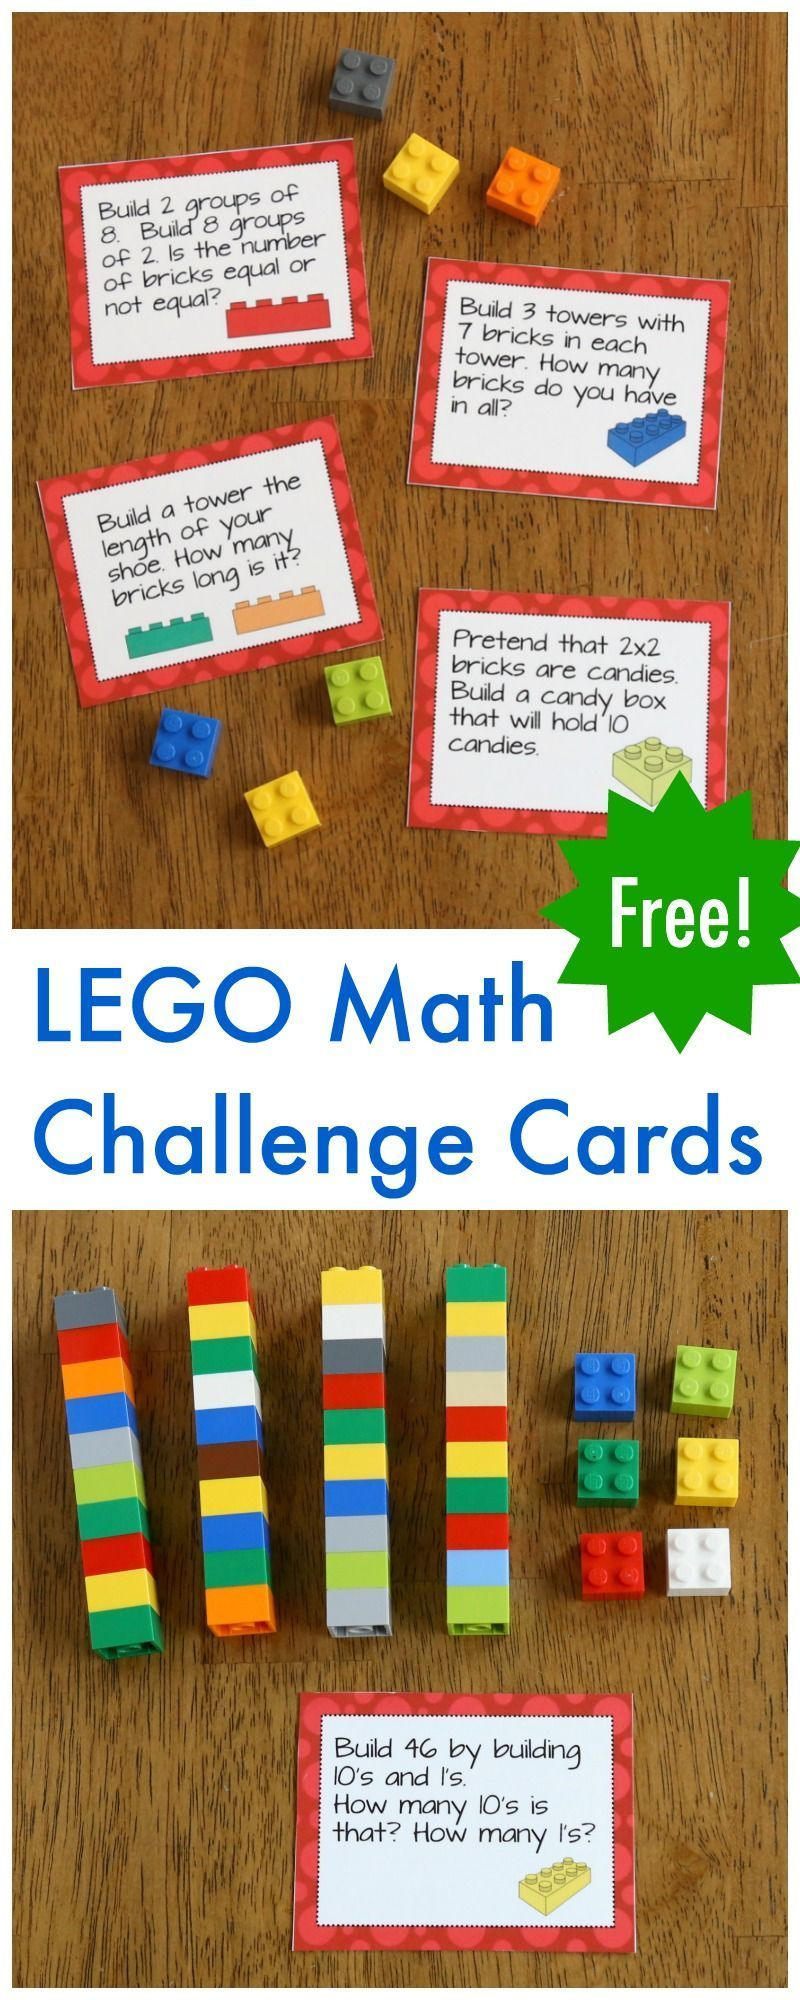 Math Challenge Printable LEGO Cards